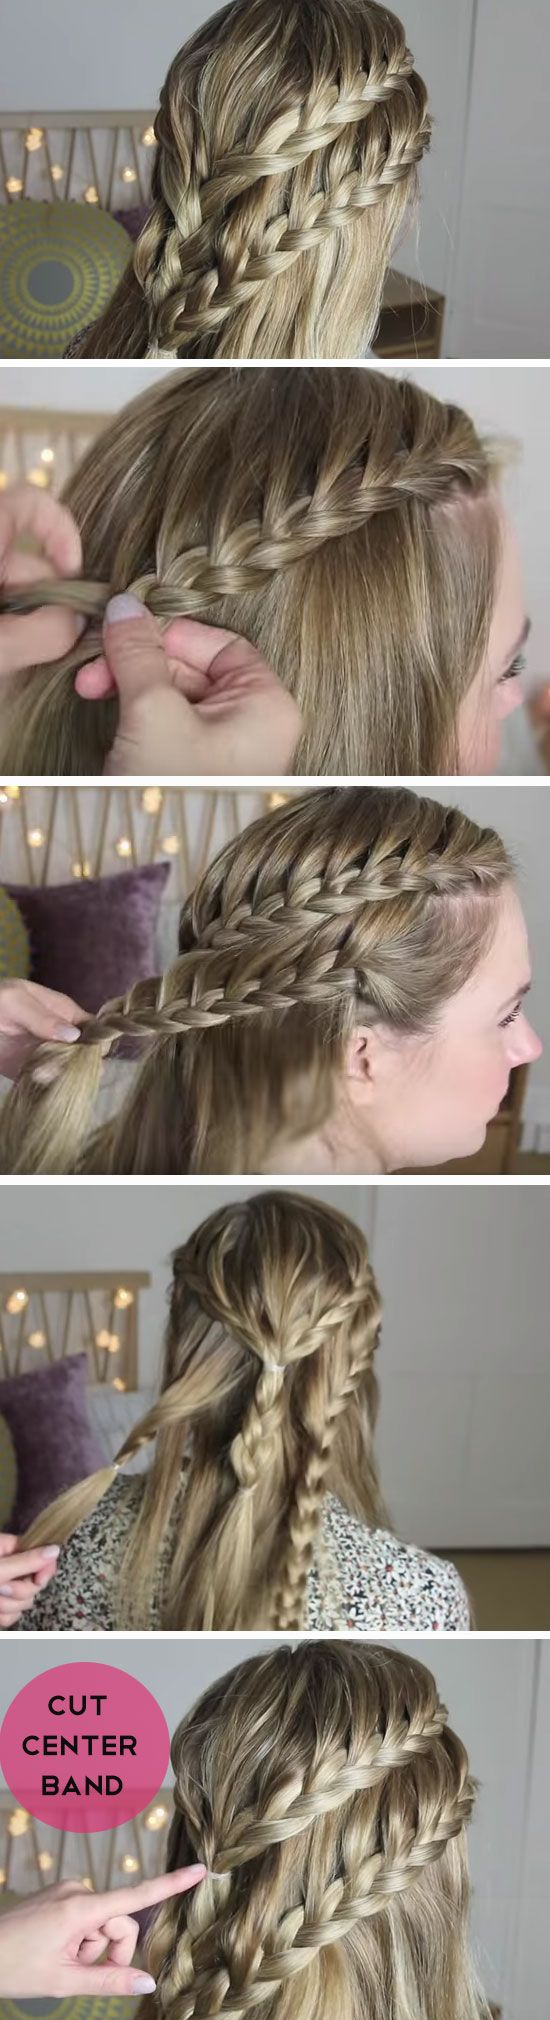 Double Braid Crown 18 DIY Game of Thrones Inspired Hairstyles that will turn you into a medieval princess!